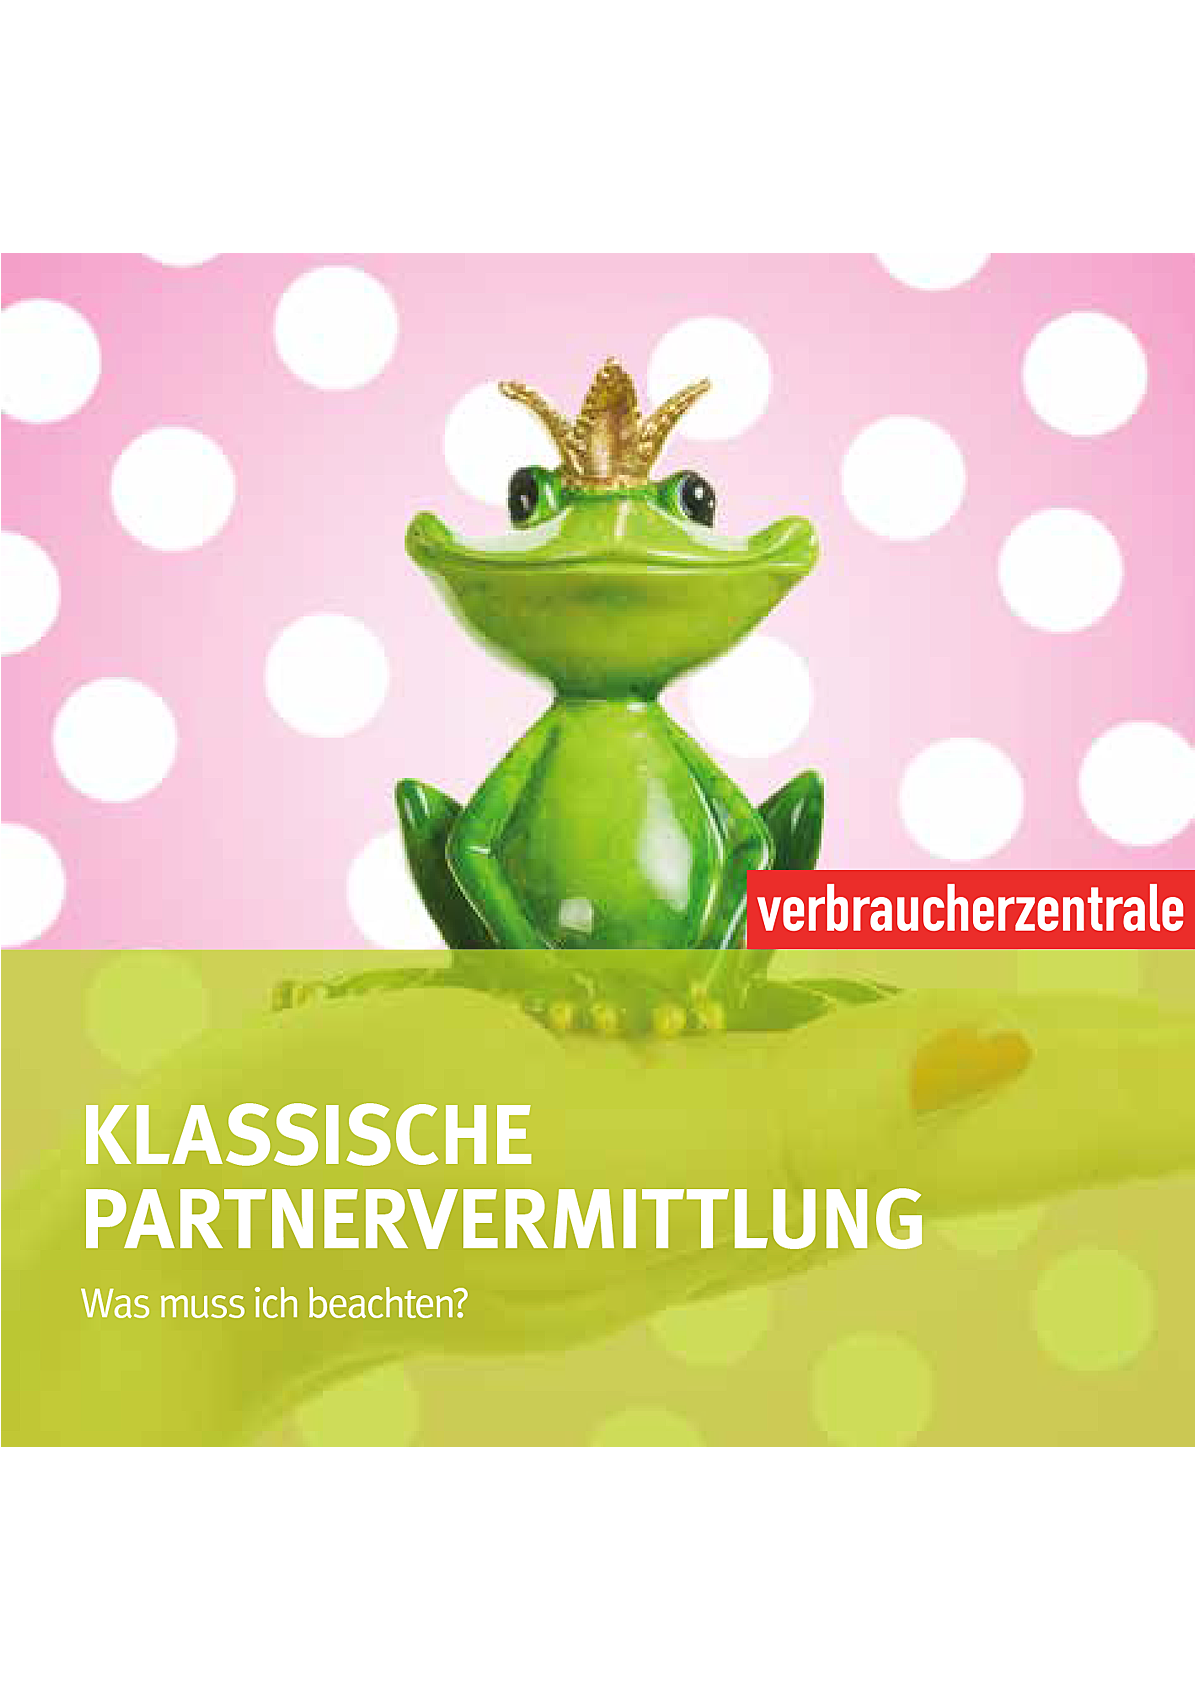 confirm. dating app sachsen that can not participate